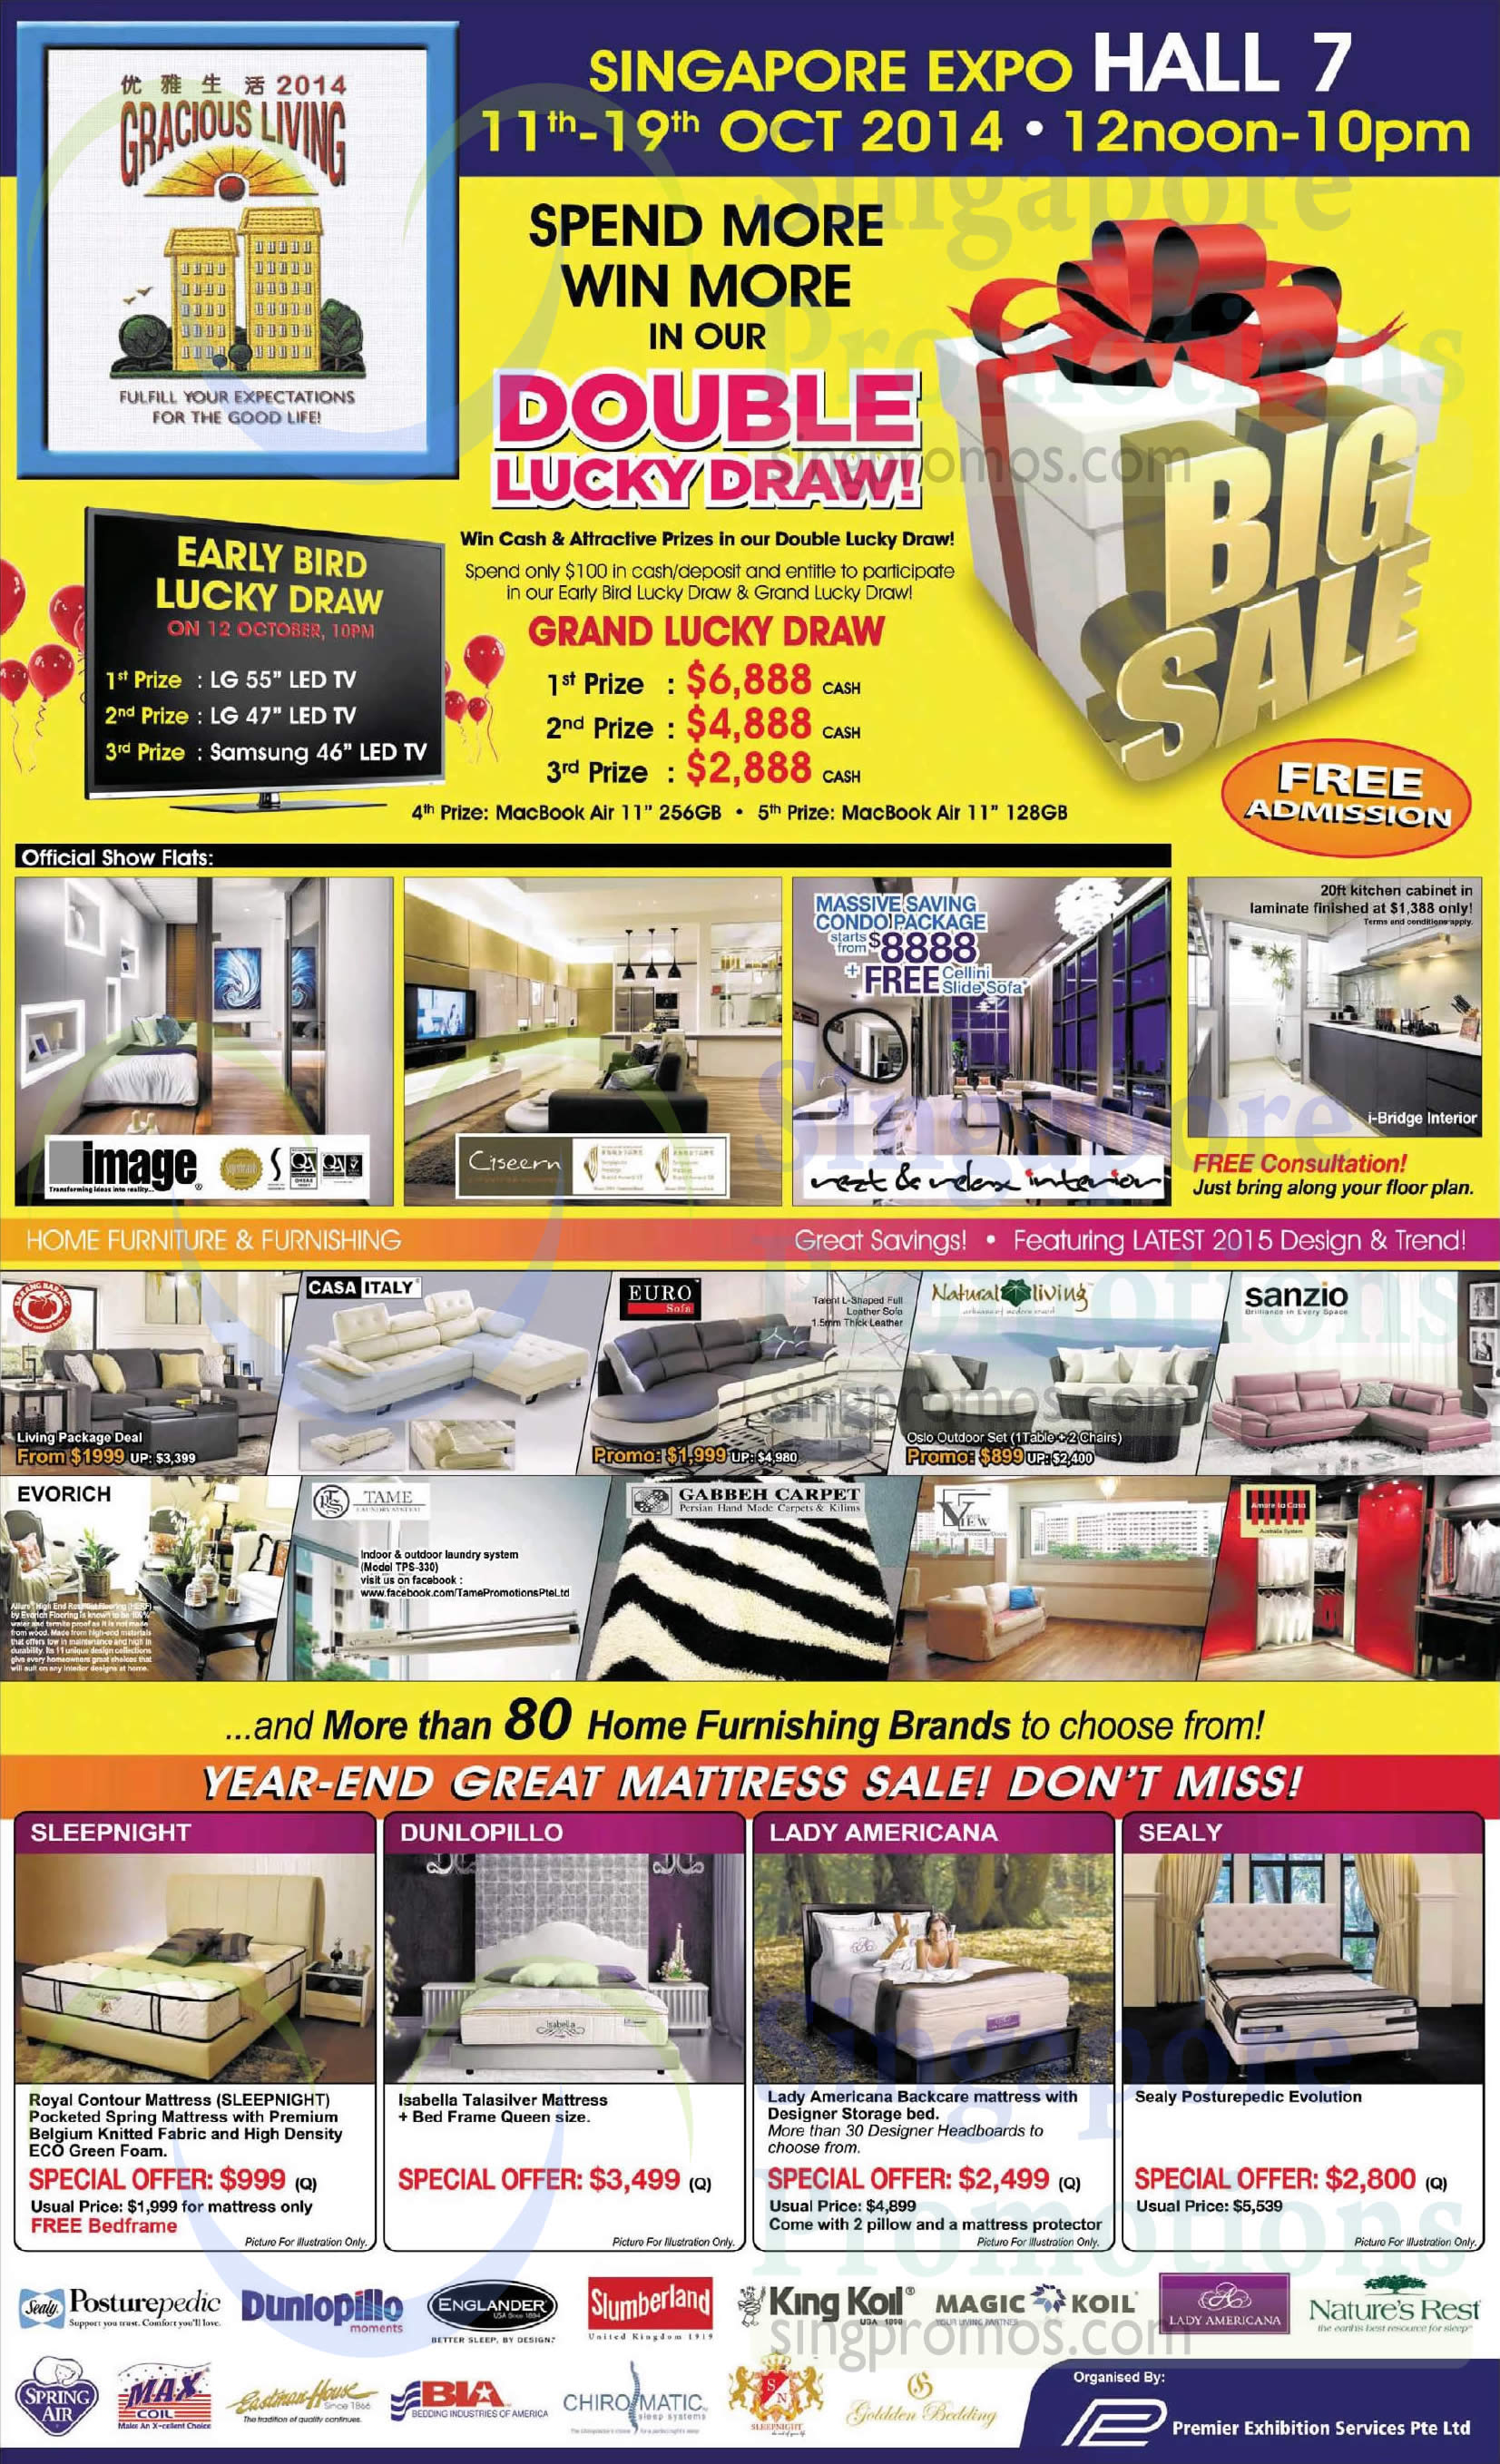 Gracious Living 11 Oct 2014 Gracious Living Furnishing